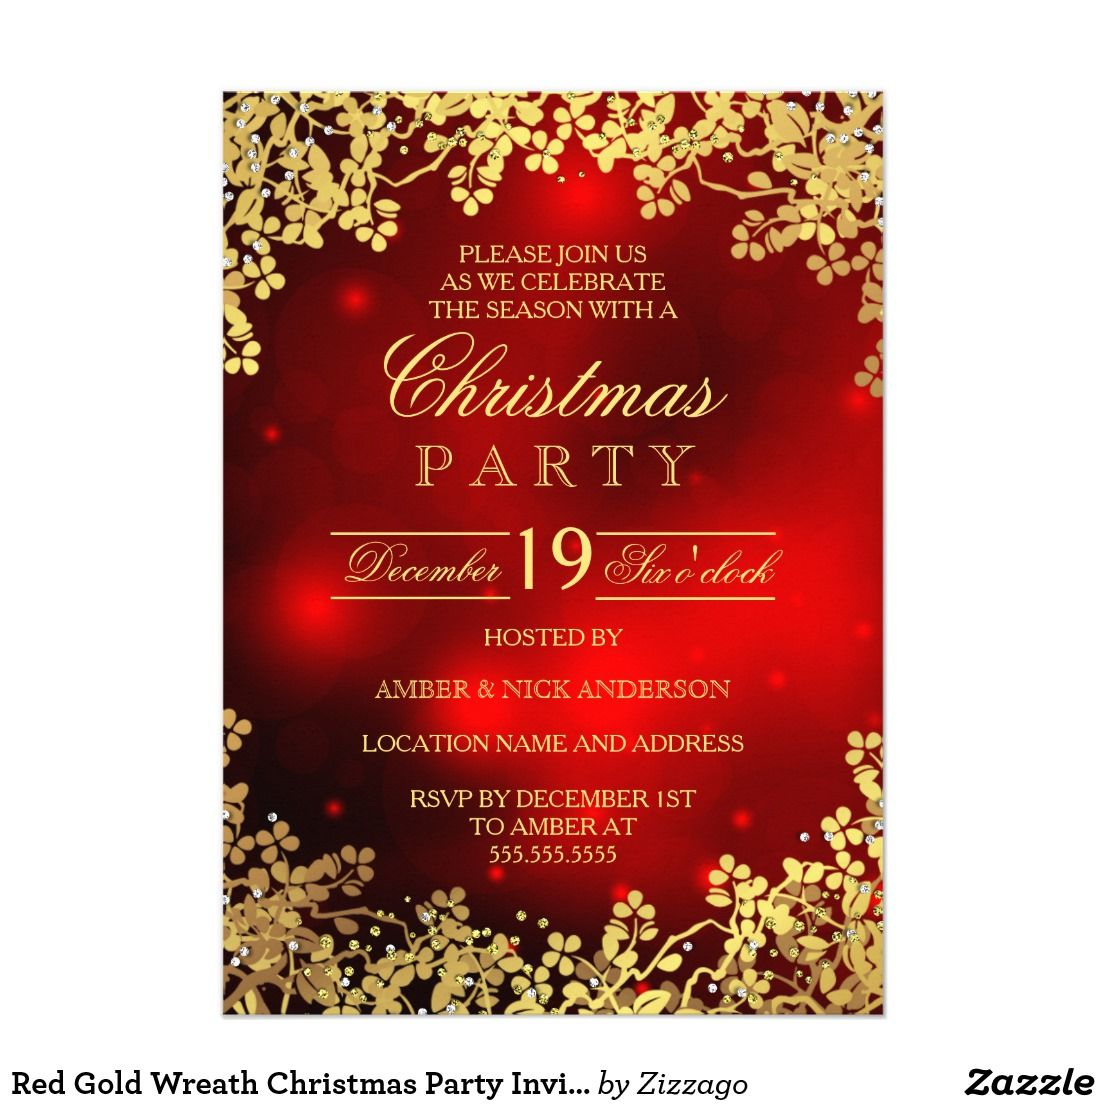 Red Gold Wreath Christmas Party Invitation | Pinterest | Party ...